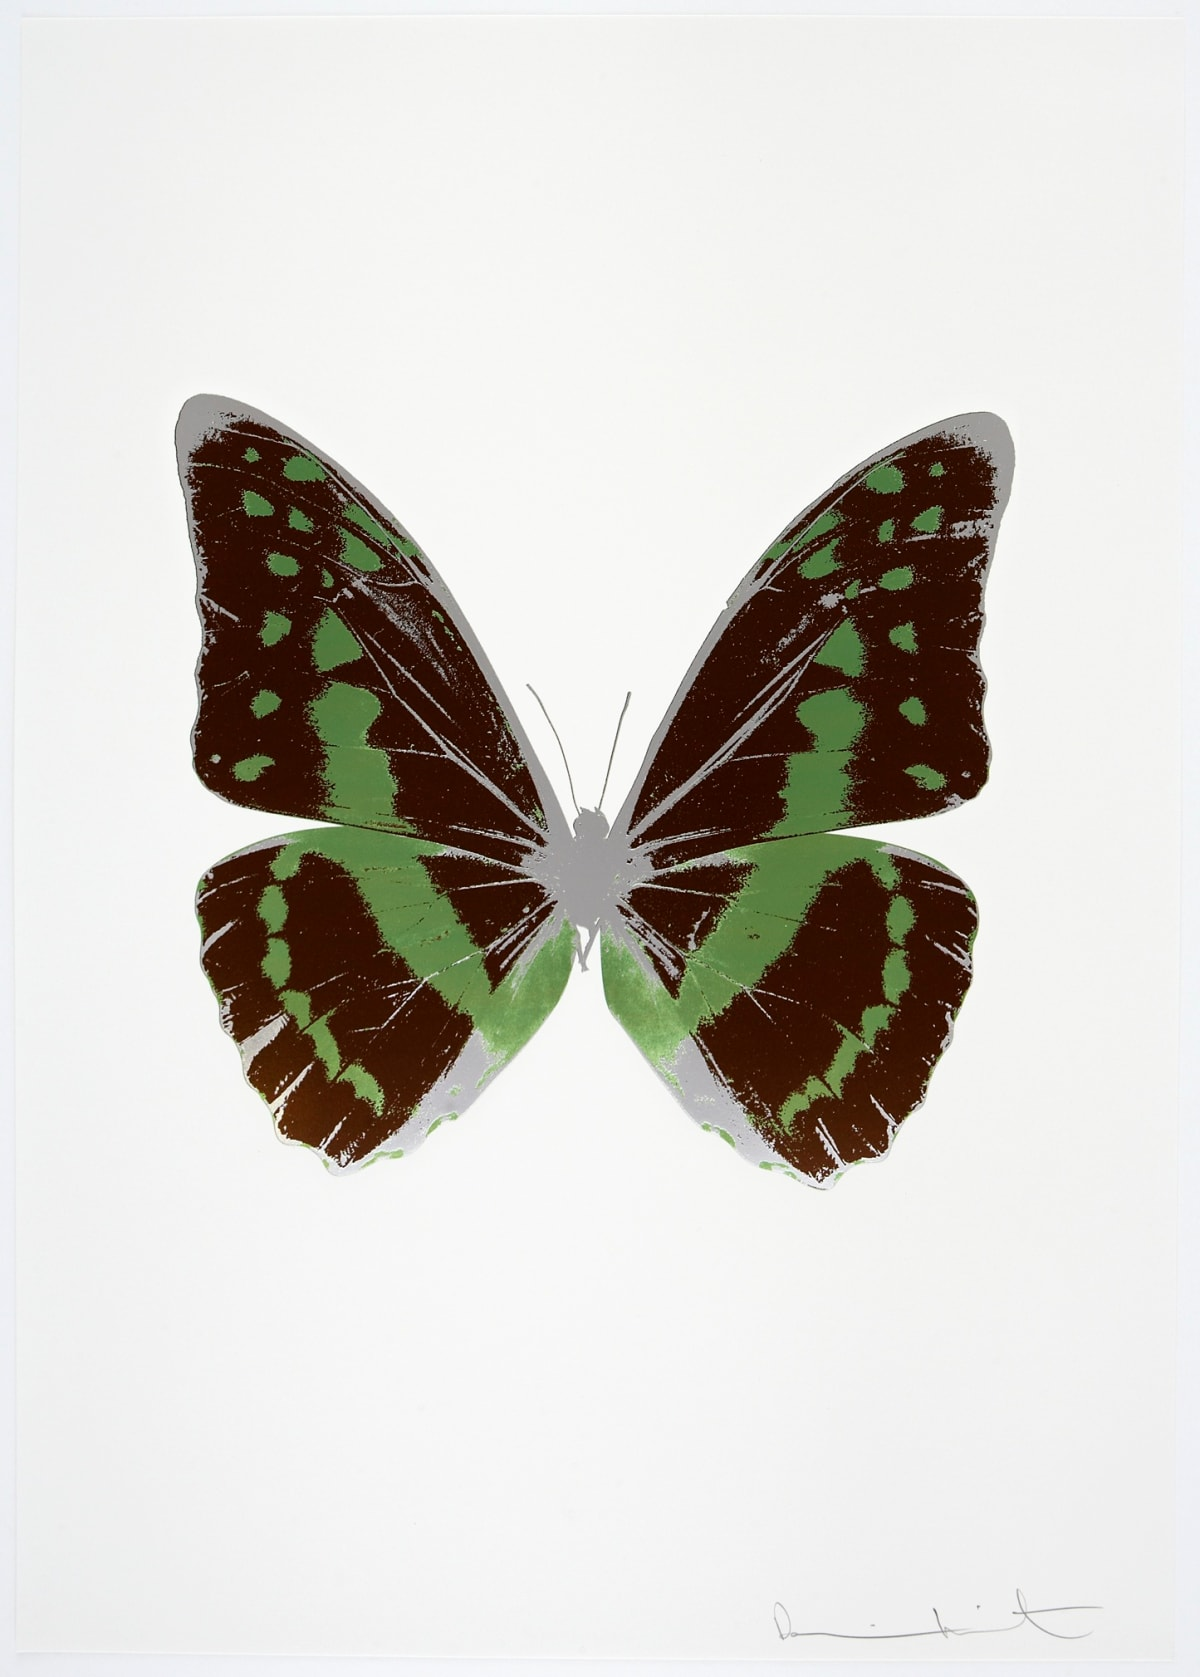 Damien Hirst The Souls III - Chocolate/Leaf Green/Silver Gloss, 2010 3 colour foil block on 300gsm Arches 88 archival paper. Signed and numbered. Published by Paul Stolper and Other Criteria 72 x 51cm OC7933 / 660-36 Edition of 15